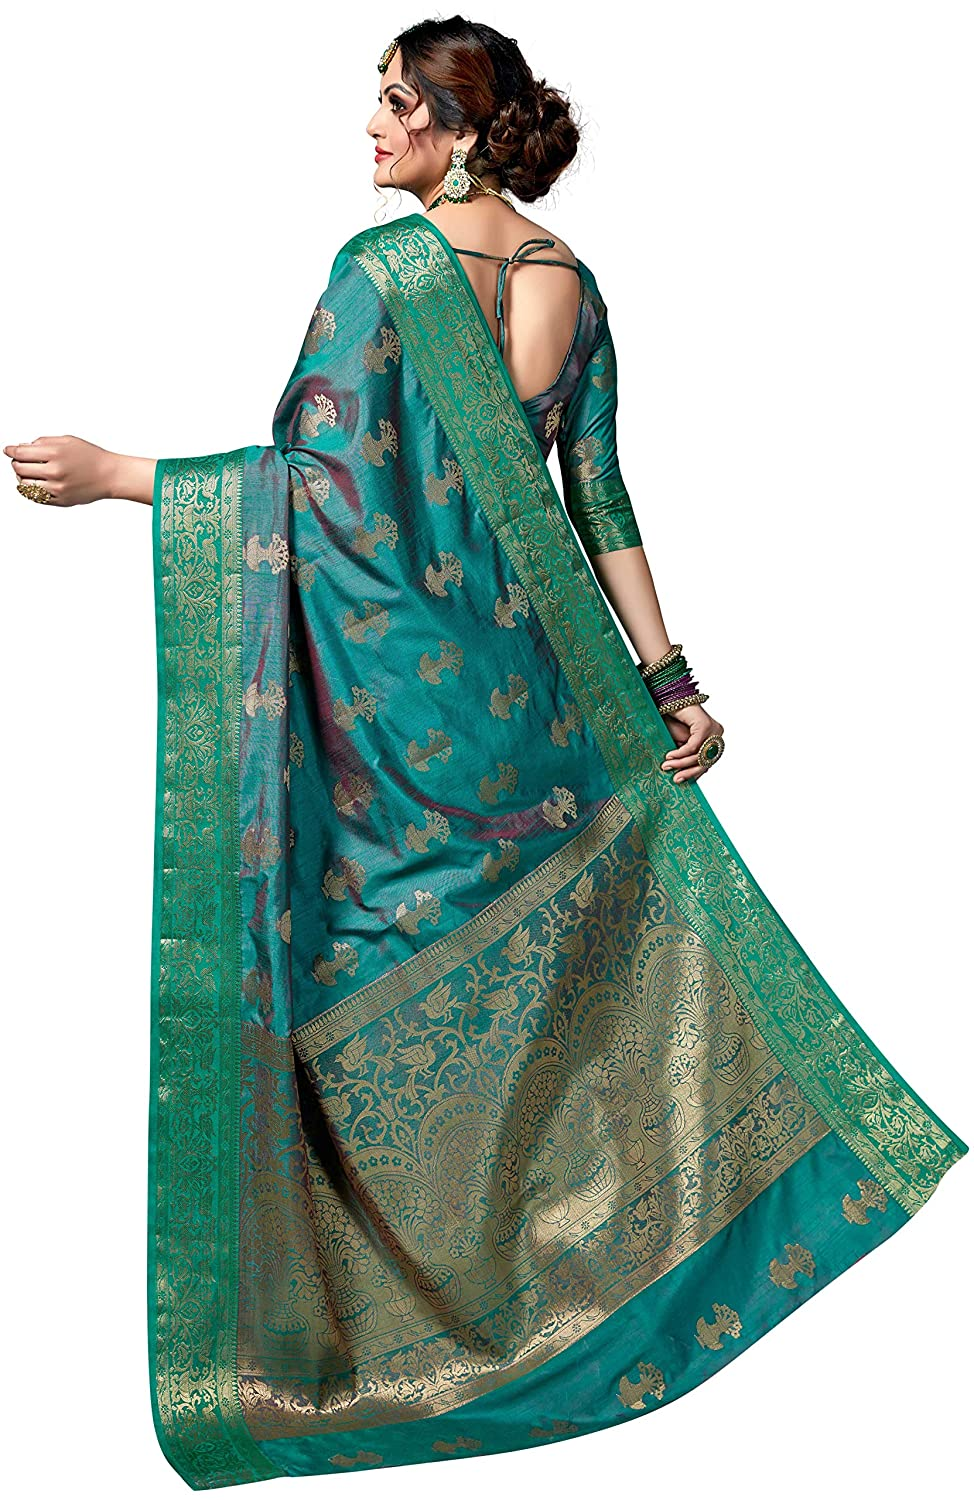 Turquoise Blue, Green Women's Silk Saree Collection